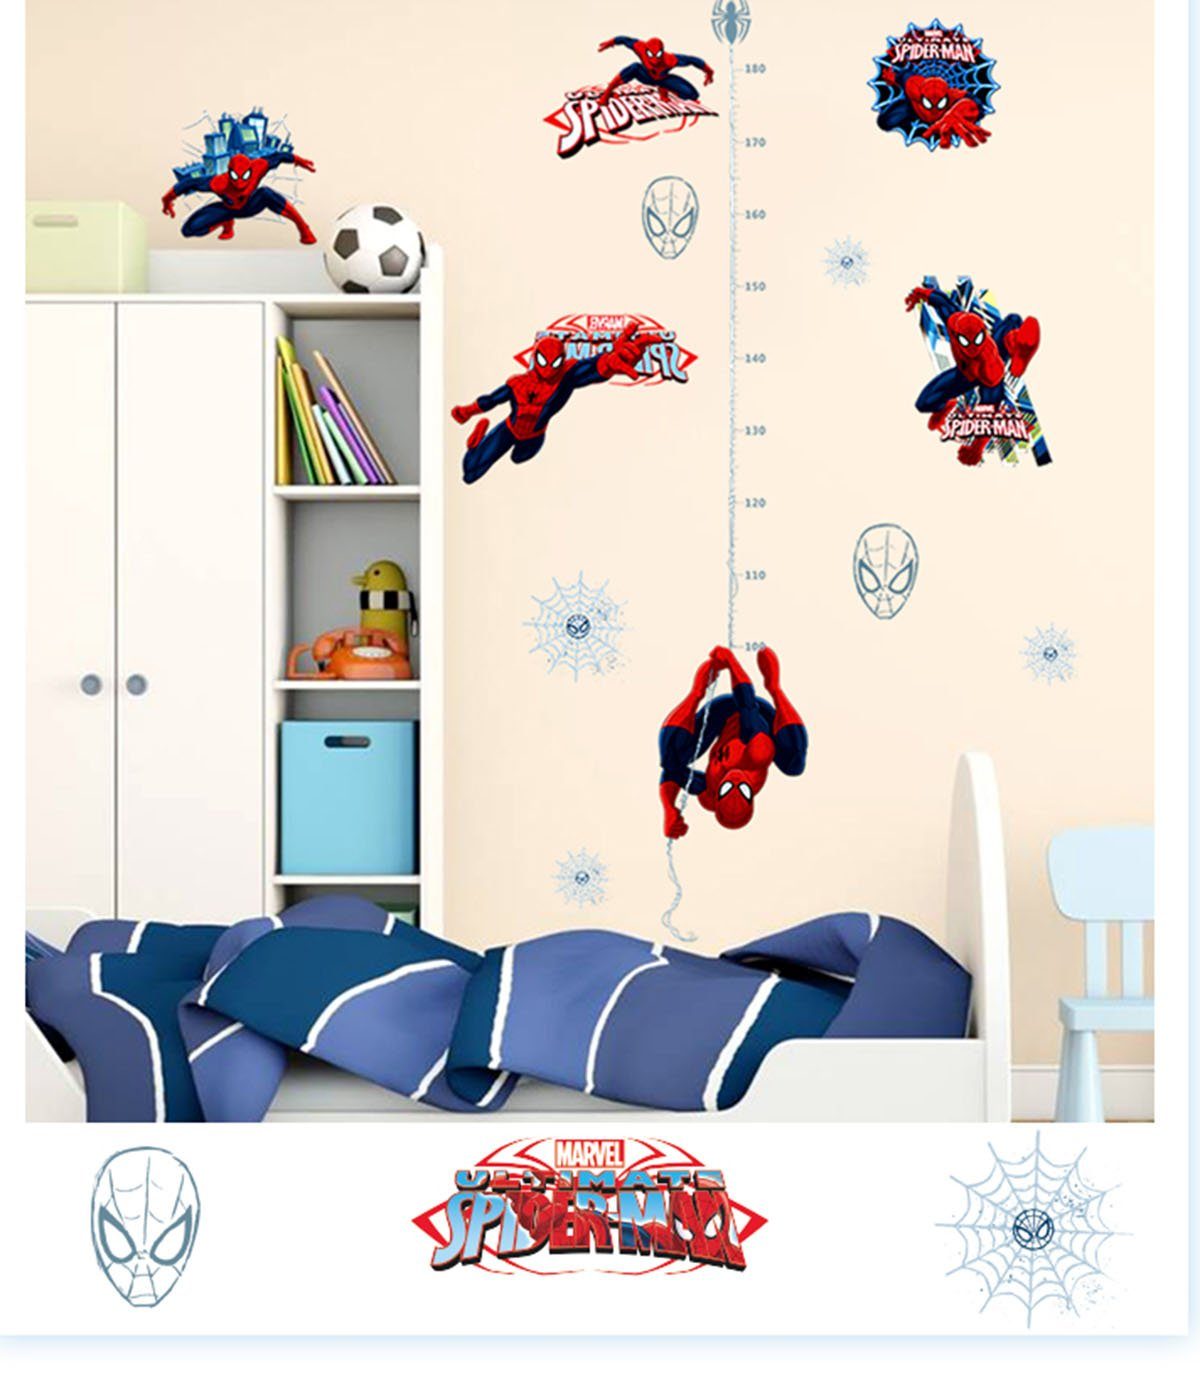 Ikeelife Spiderman Cartoon Marvels Hero Height Measurement Growth Chart Wall Vinyl Decal For Kids Room Spider-Man Decor Sticker Removable Boys Children'S Bedroom Ws001 C 140X90Cm/55.2X35.5''